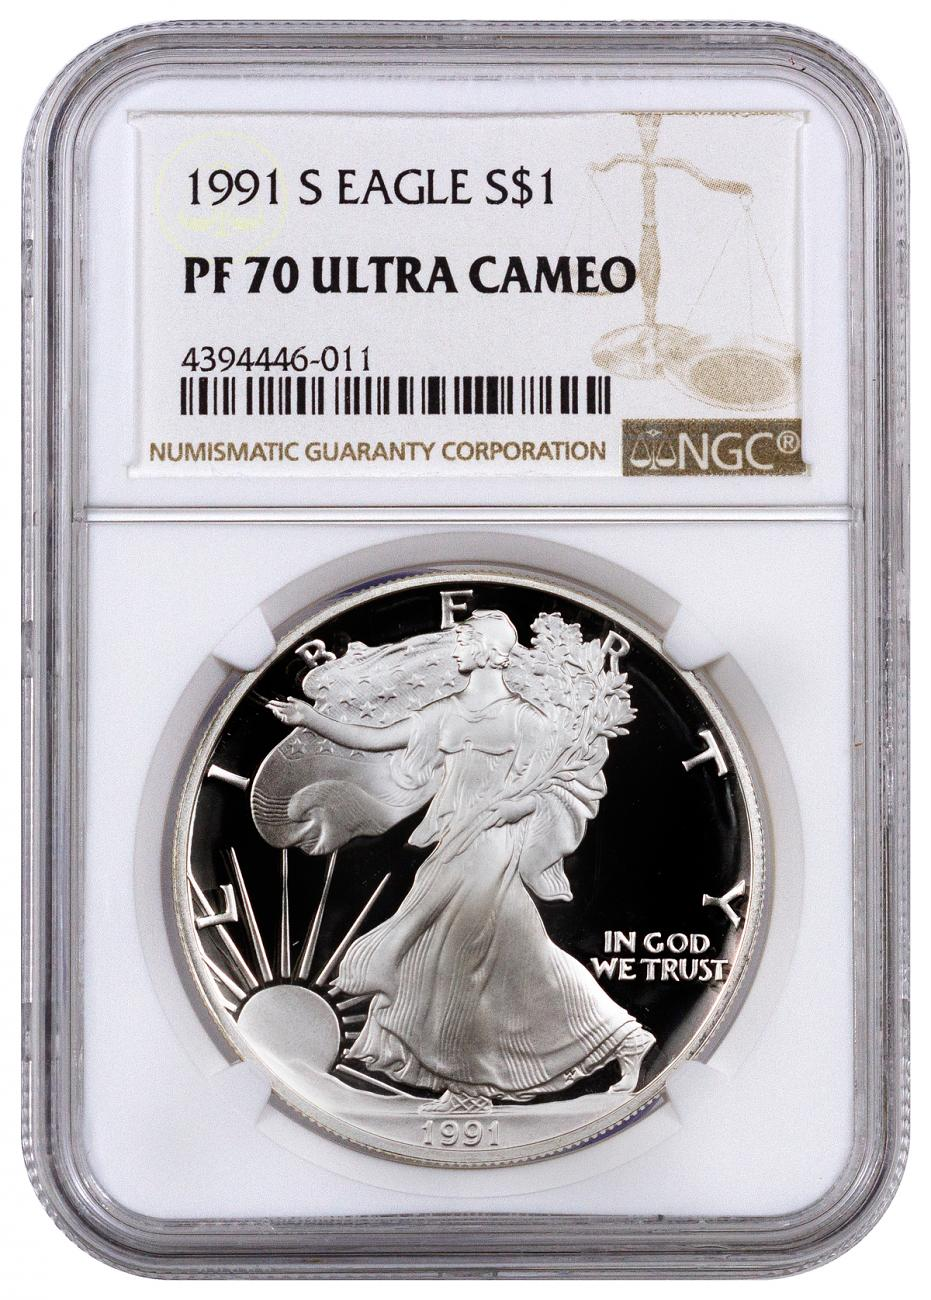 1991 S American Silver Eagle Proof Ngc Pf70 Uc